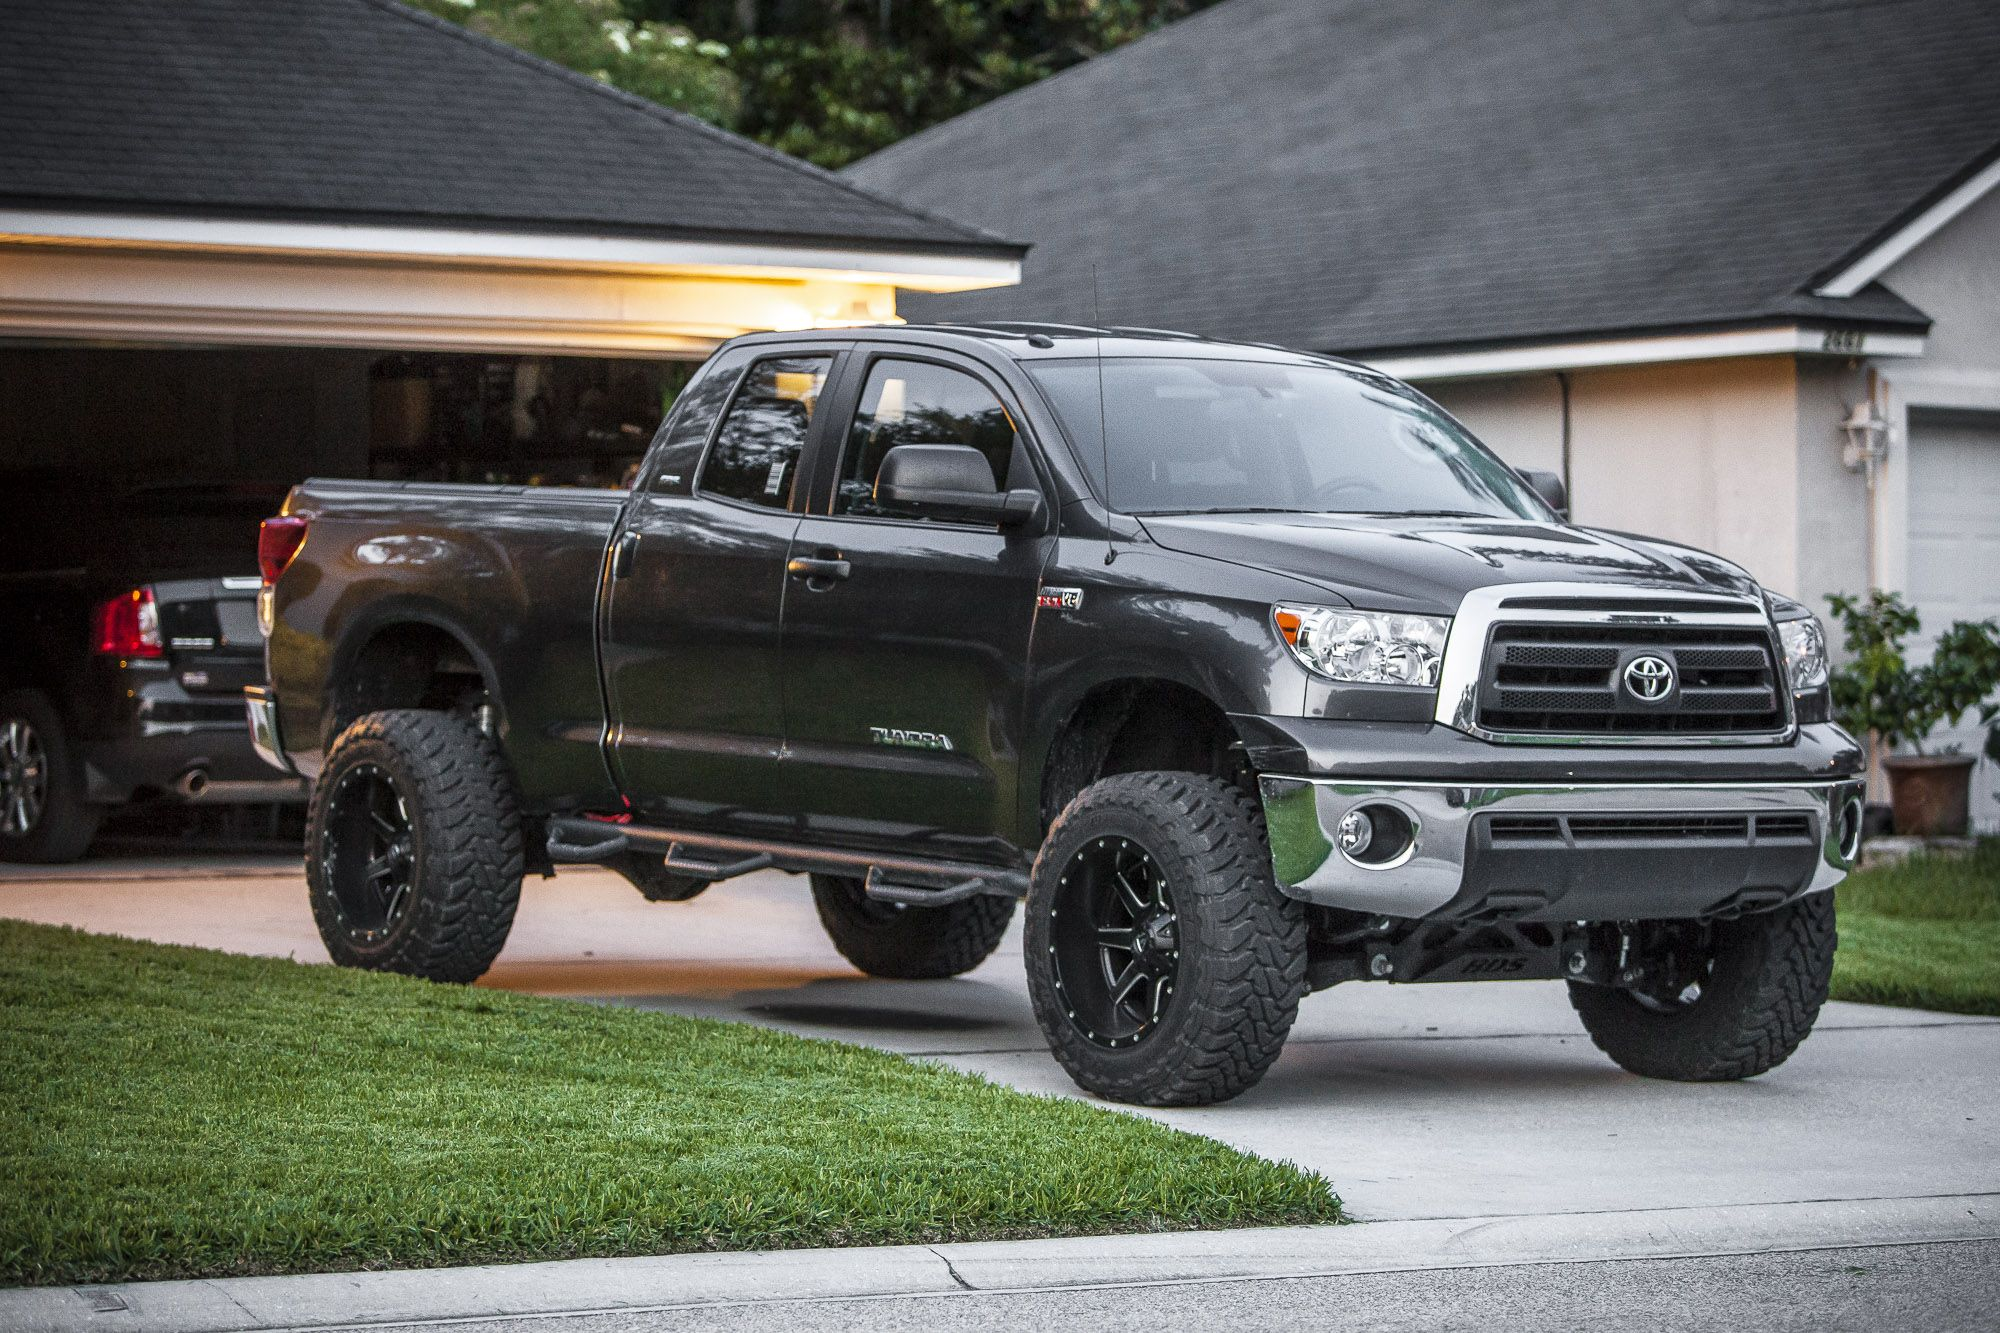 """2013 Toyota Tundra SR5 5.7L V8 4x4 with a BDS 7"""" suspension lift and 35"""" Toyo MT tires on 20"""" Fuel Mavericks"""